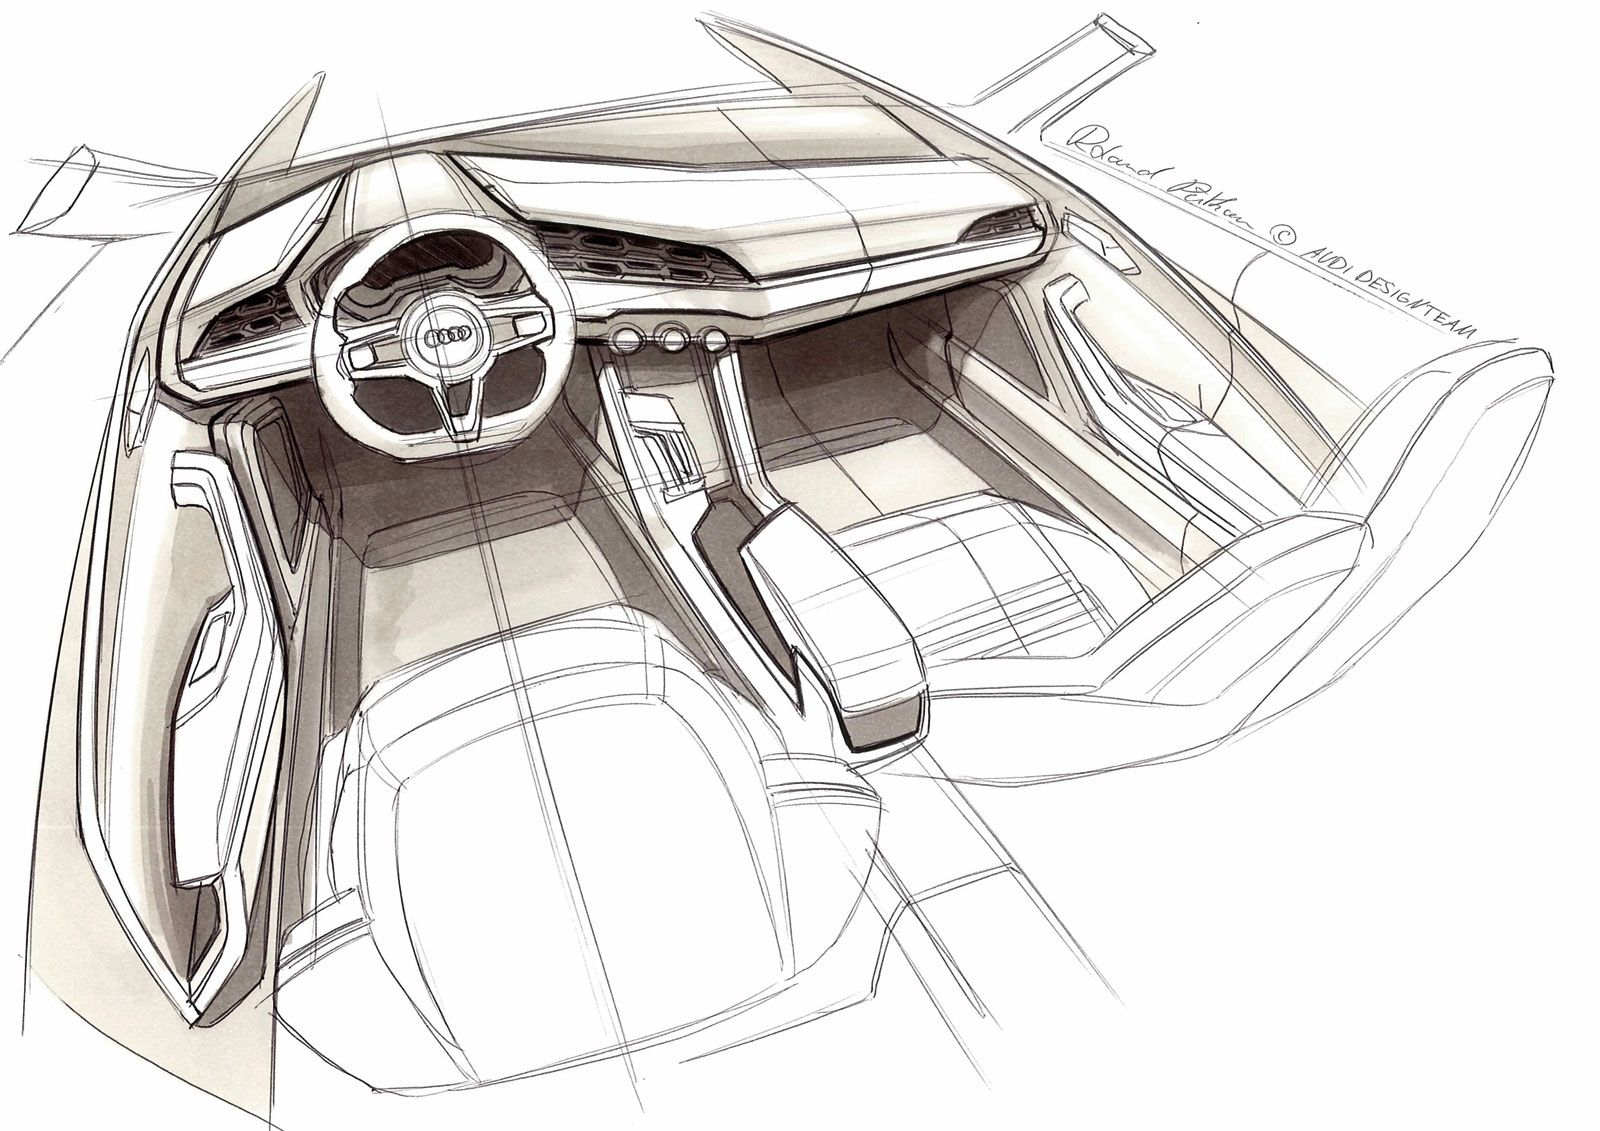 audi crosslane coupe concept interior design sketch skething 2d art pinterest interior